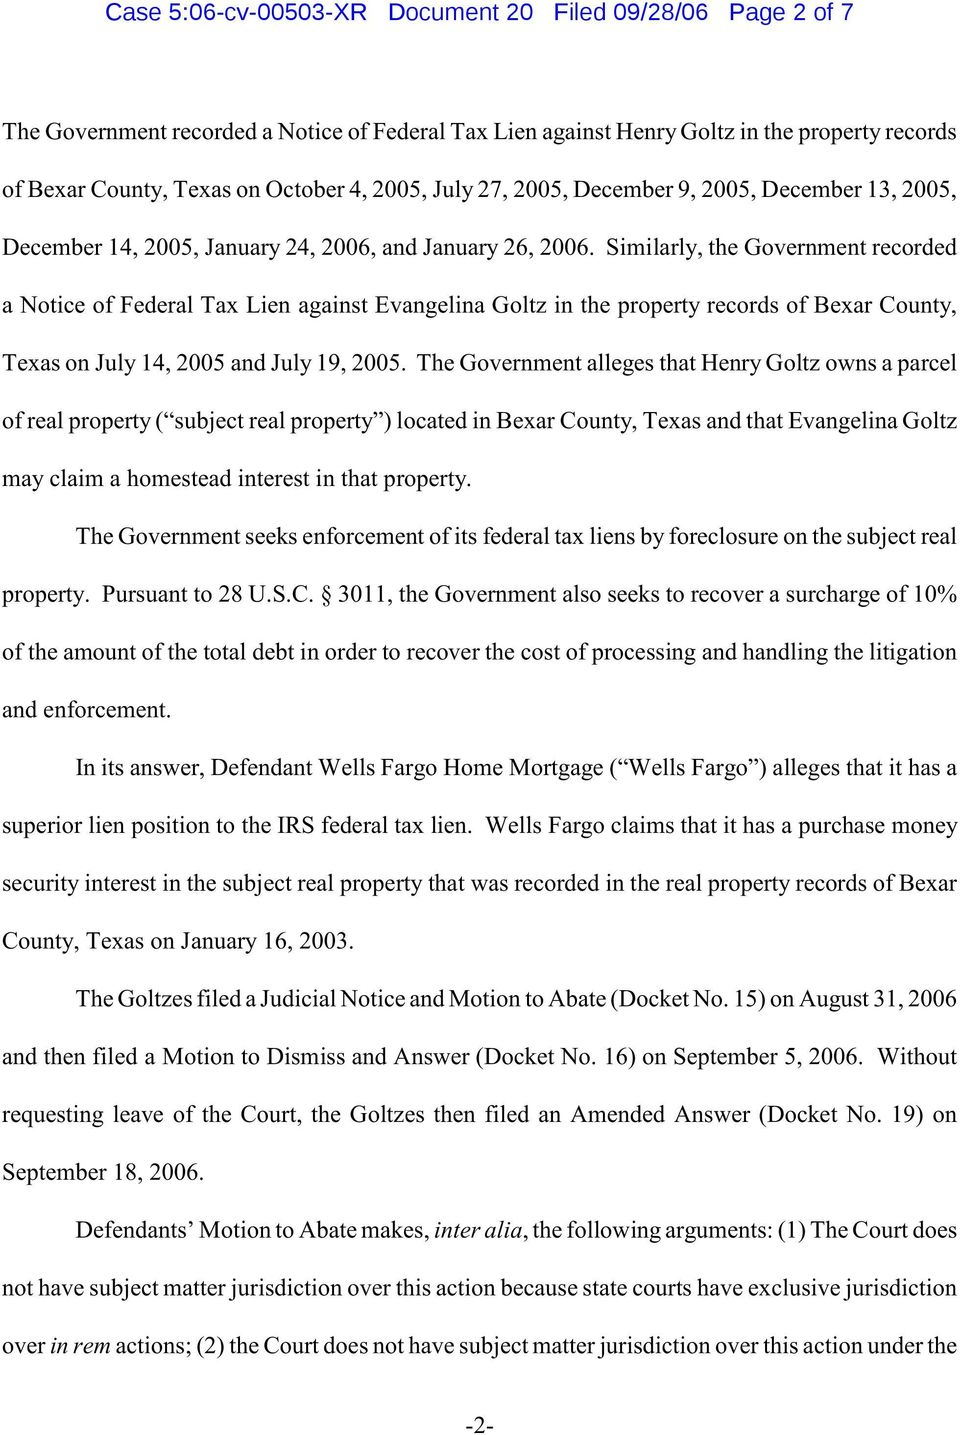 Similarly, the Government recorded a Notice of Federal Tax Lien against Evangelina Goltz in the property records of Bexar County, Texas on July 14, 2005 and July 19, 2005.